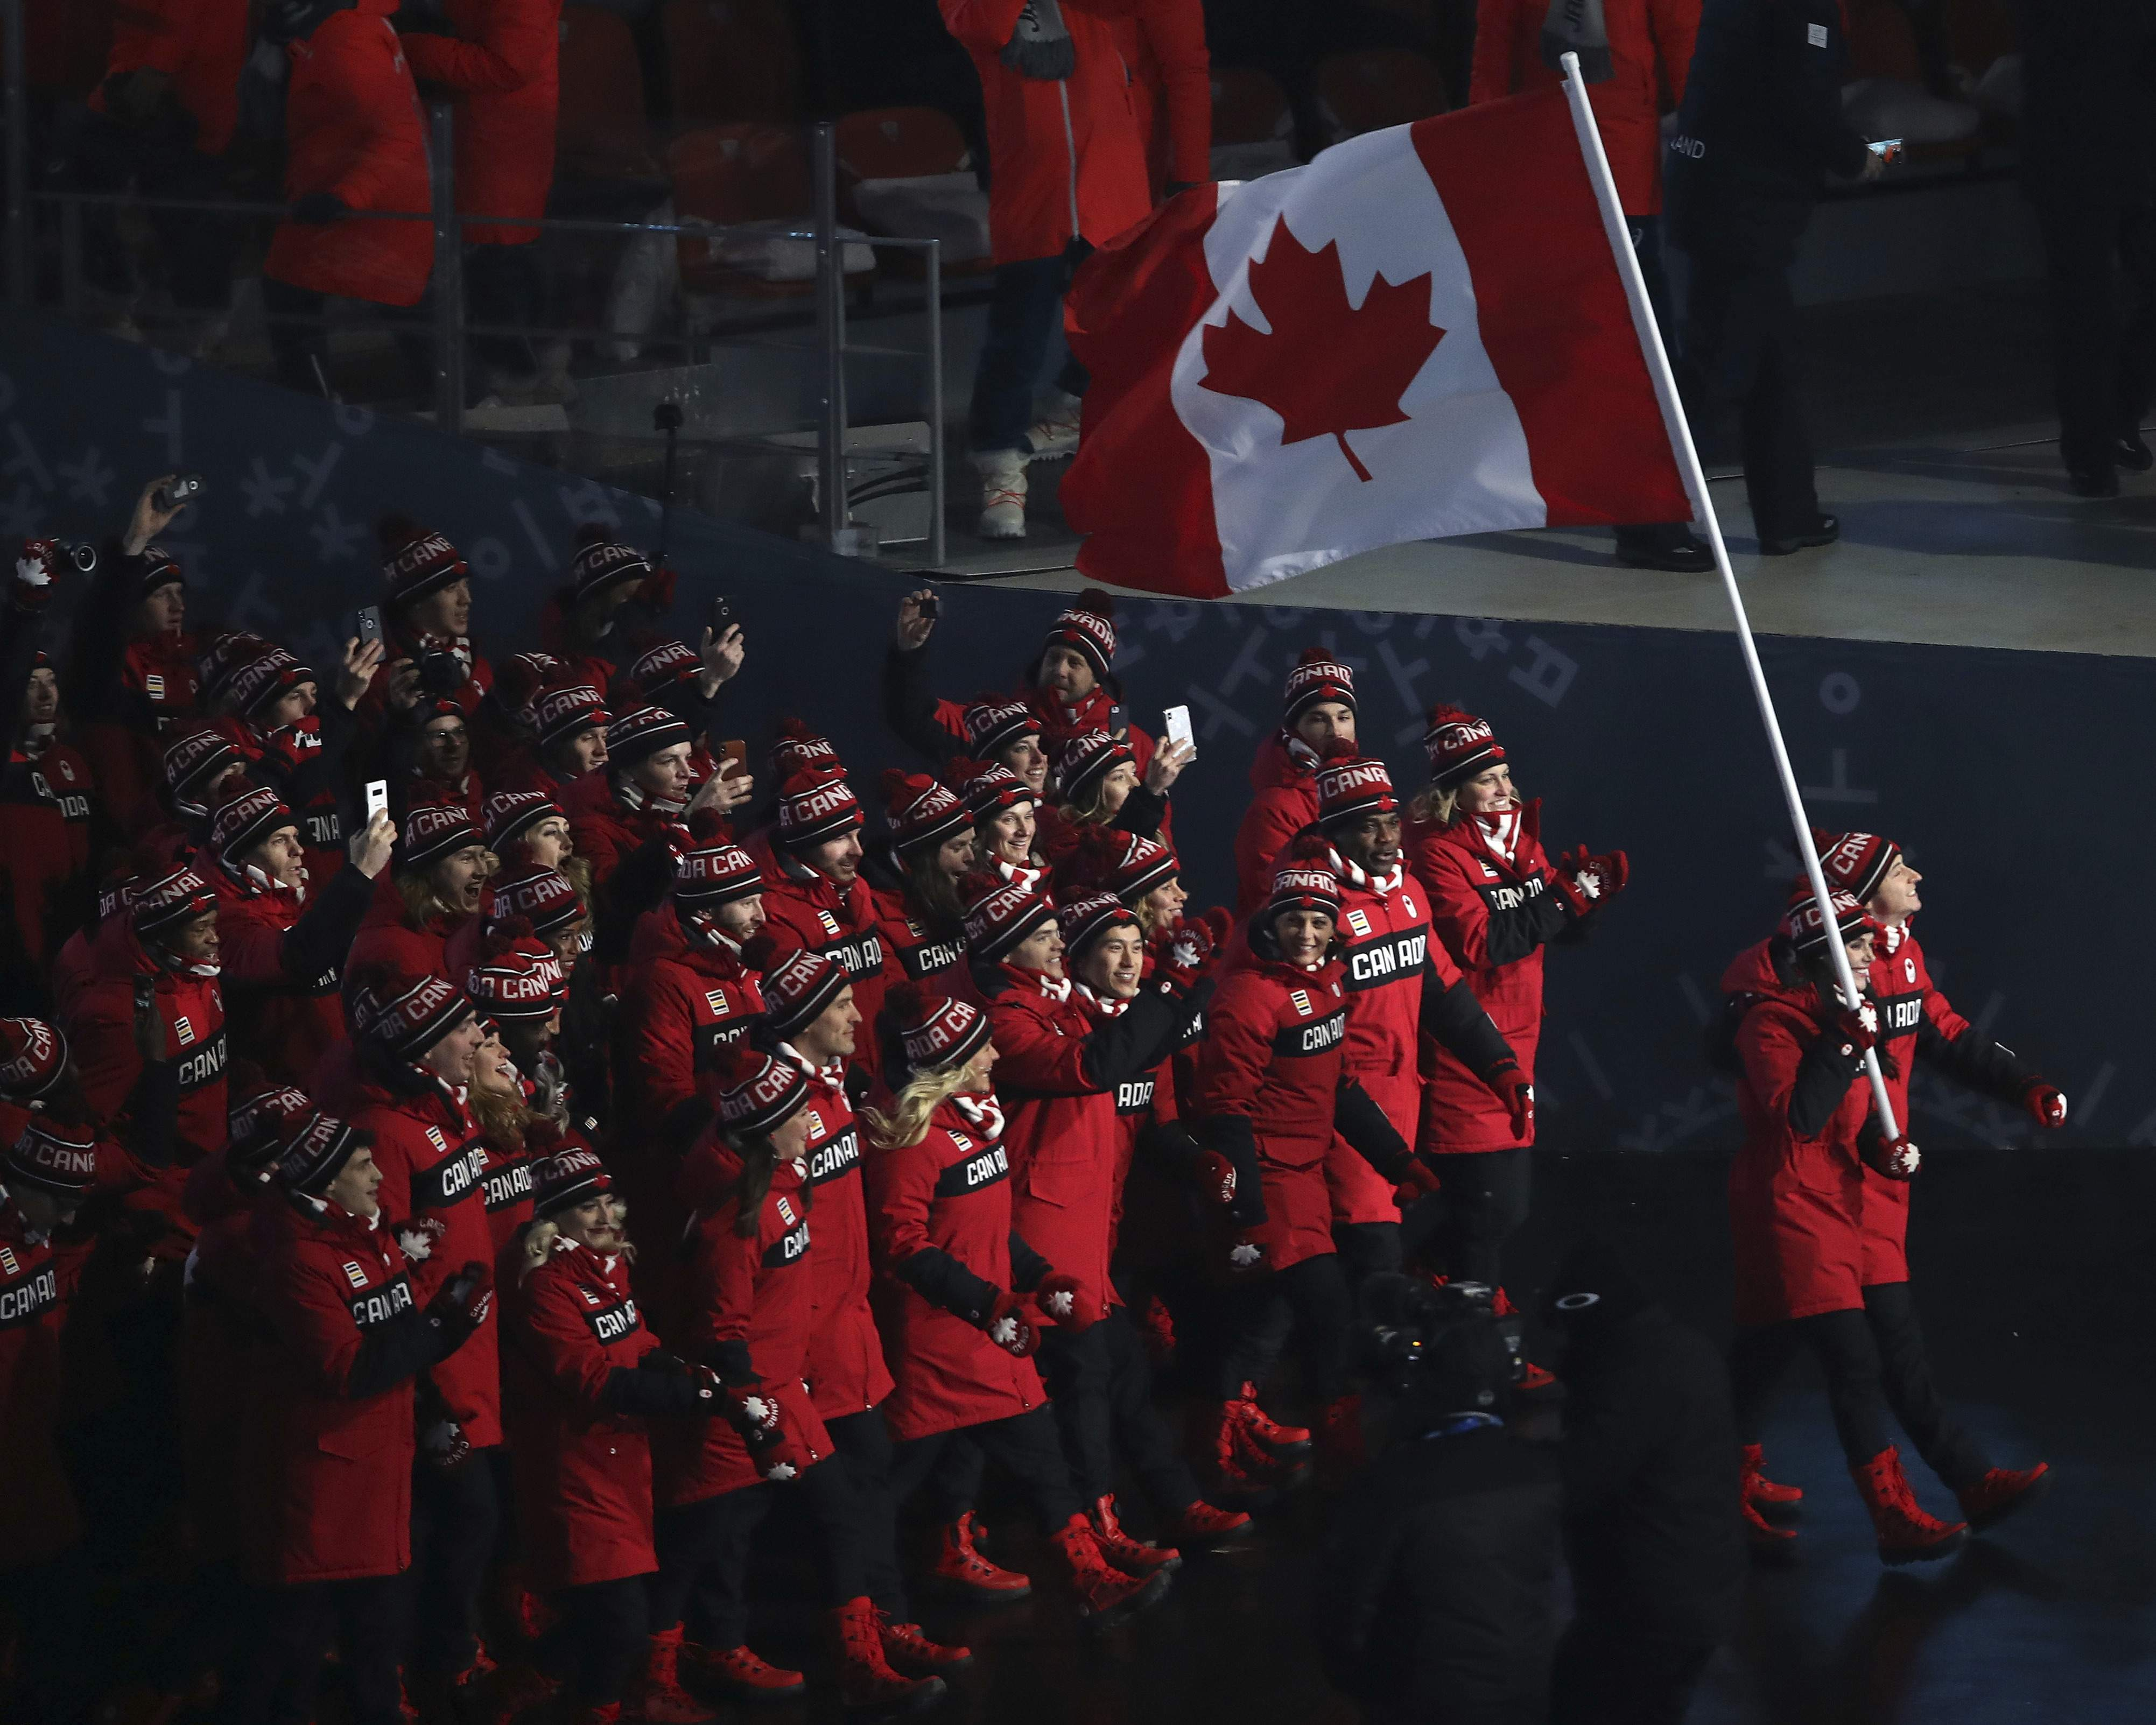 Tessa Virtue carries the flag of Canada during the opening ceremony of the 2018 Winter Olympics in Pyeongchang, South Korea, Friday, Feb. 9, 2018. (Sean Haffey/Pool Photo via AP)